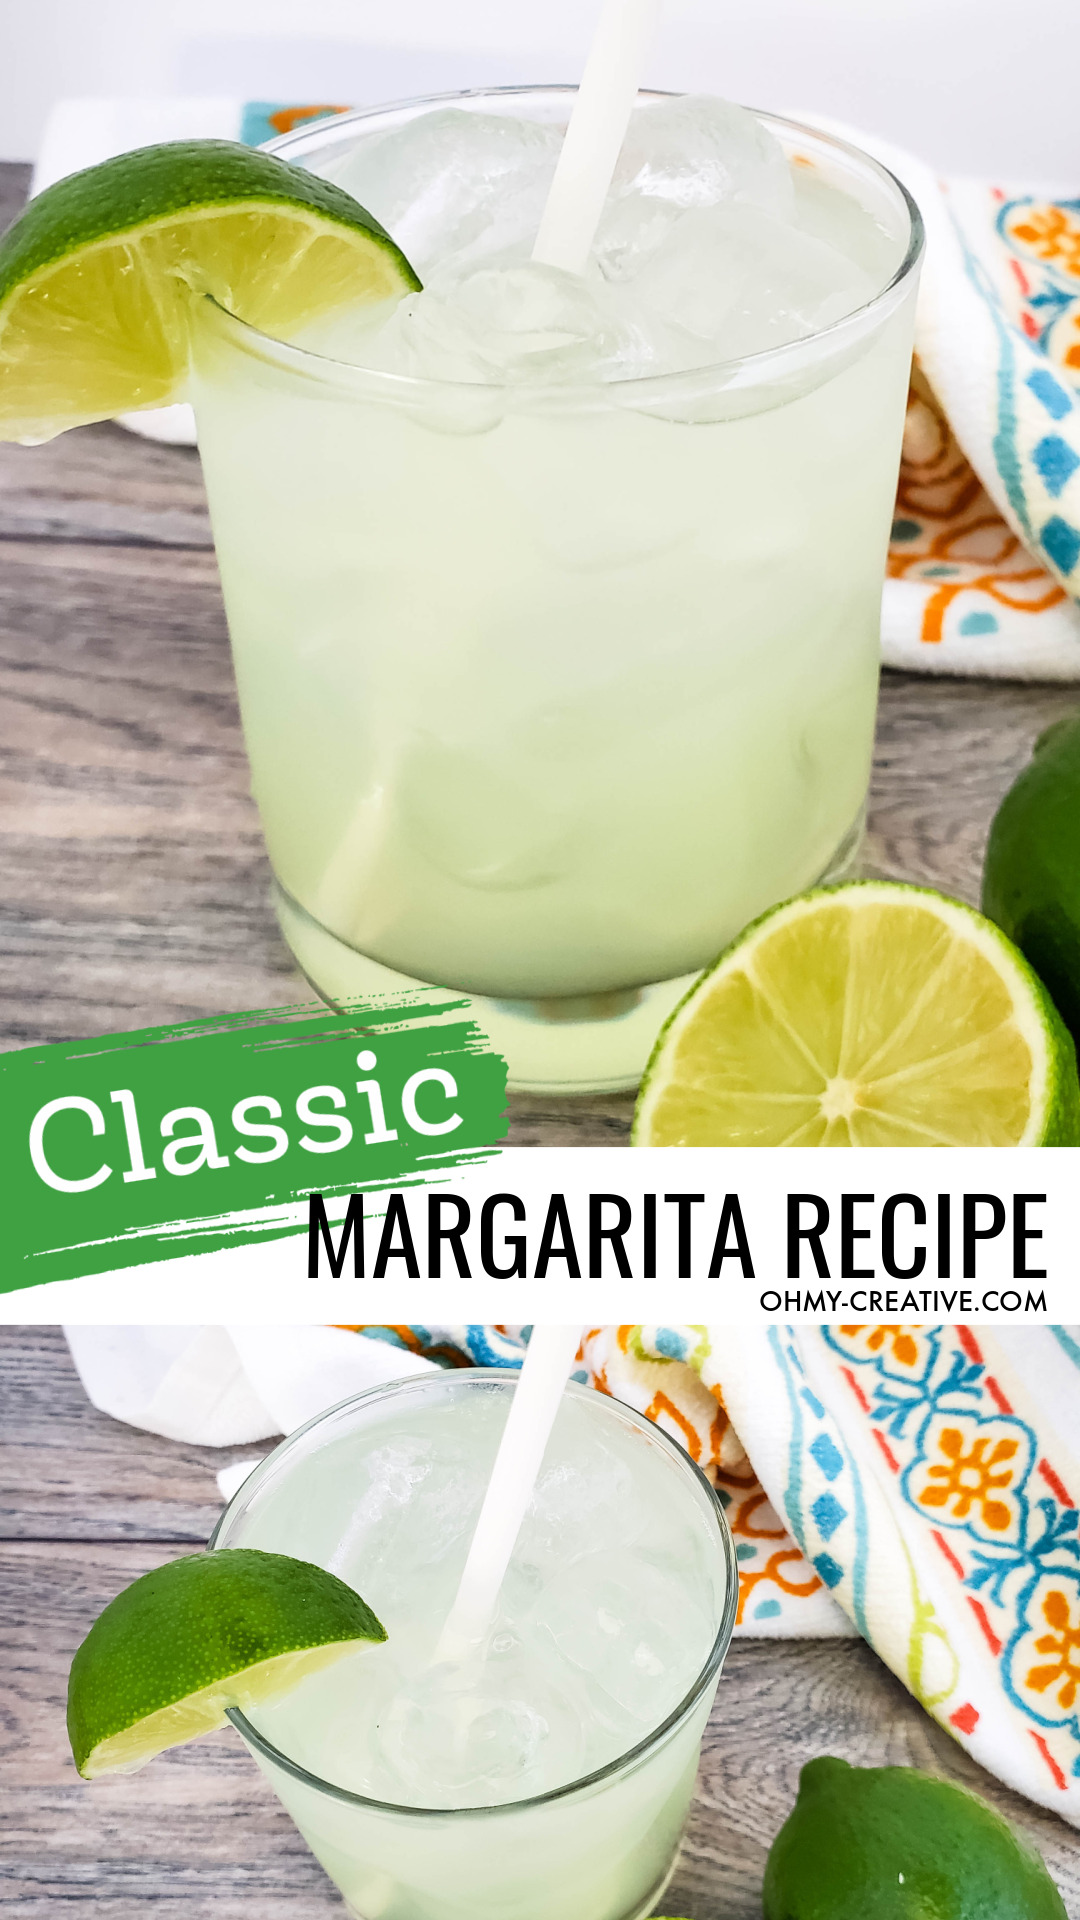 A tasty classic margarita in a tumbler glass with straw garnished with fresh limes. This tasty drink sits on a wood table with a decorative napkin in the background.